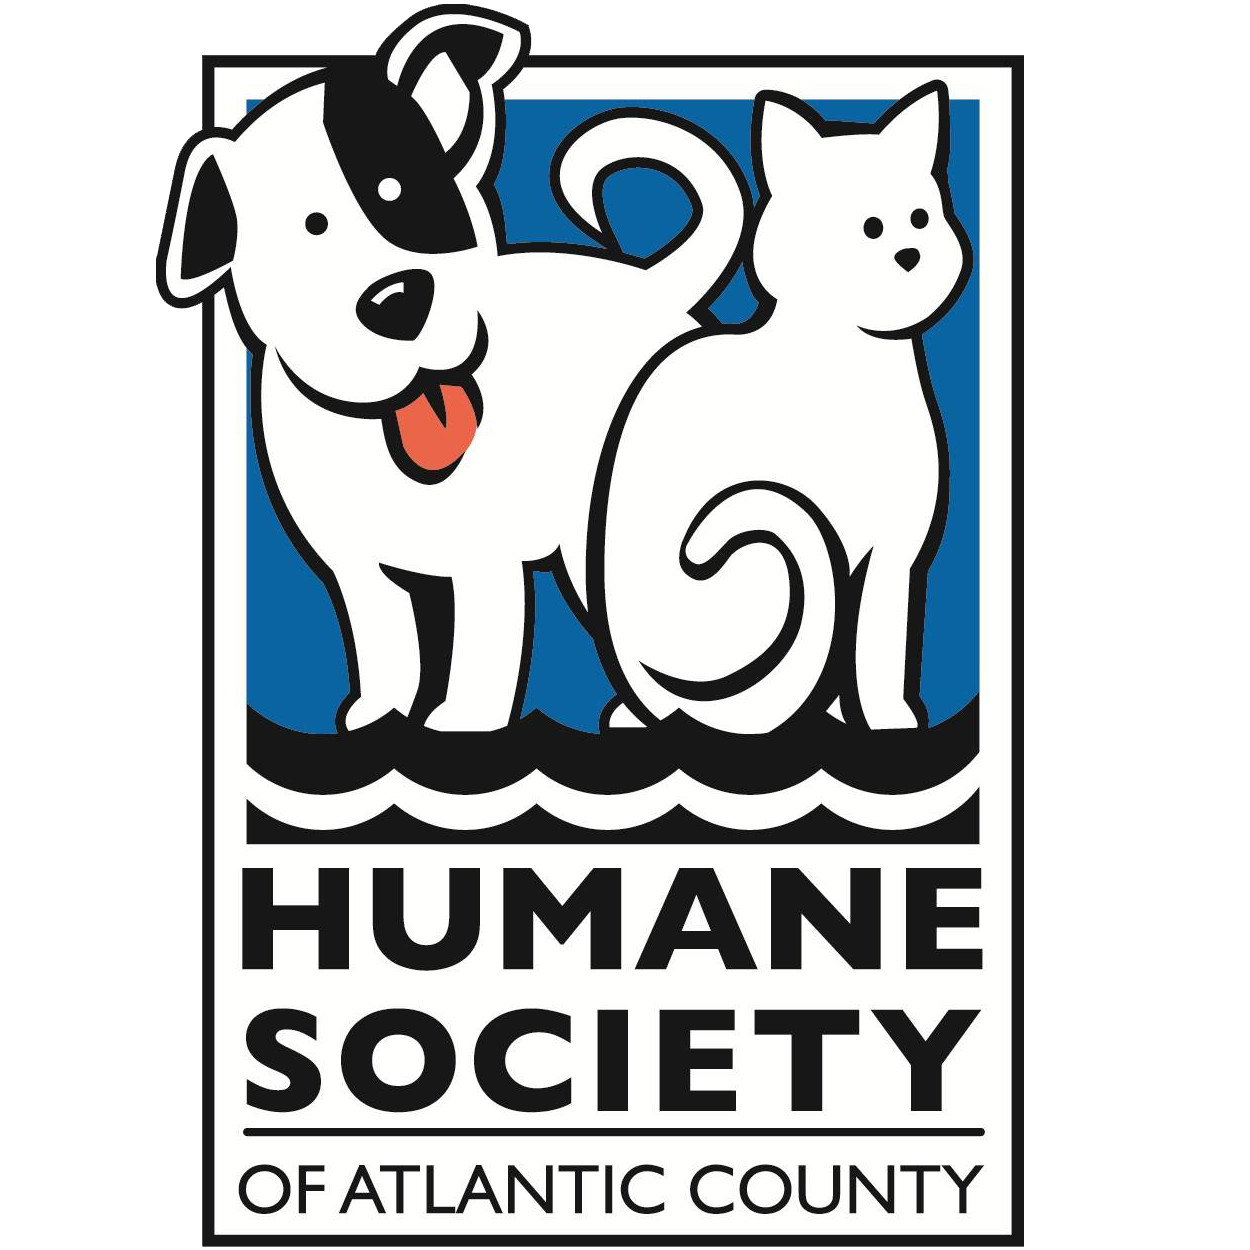 The Humane Society of Atlantic County